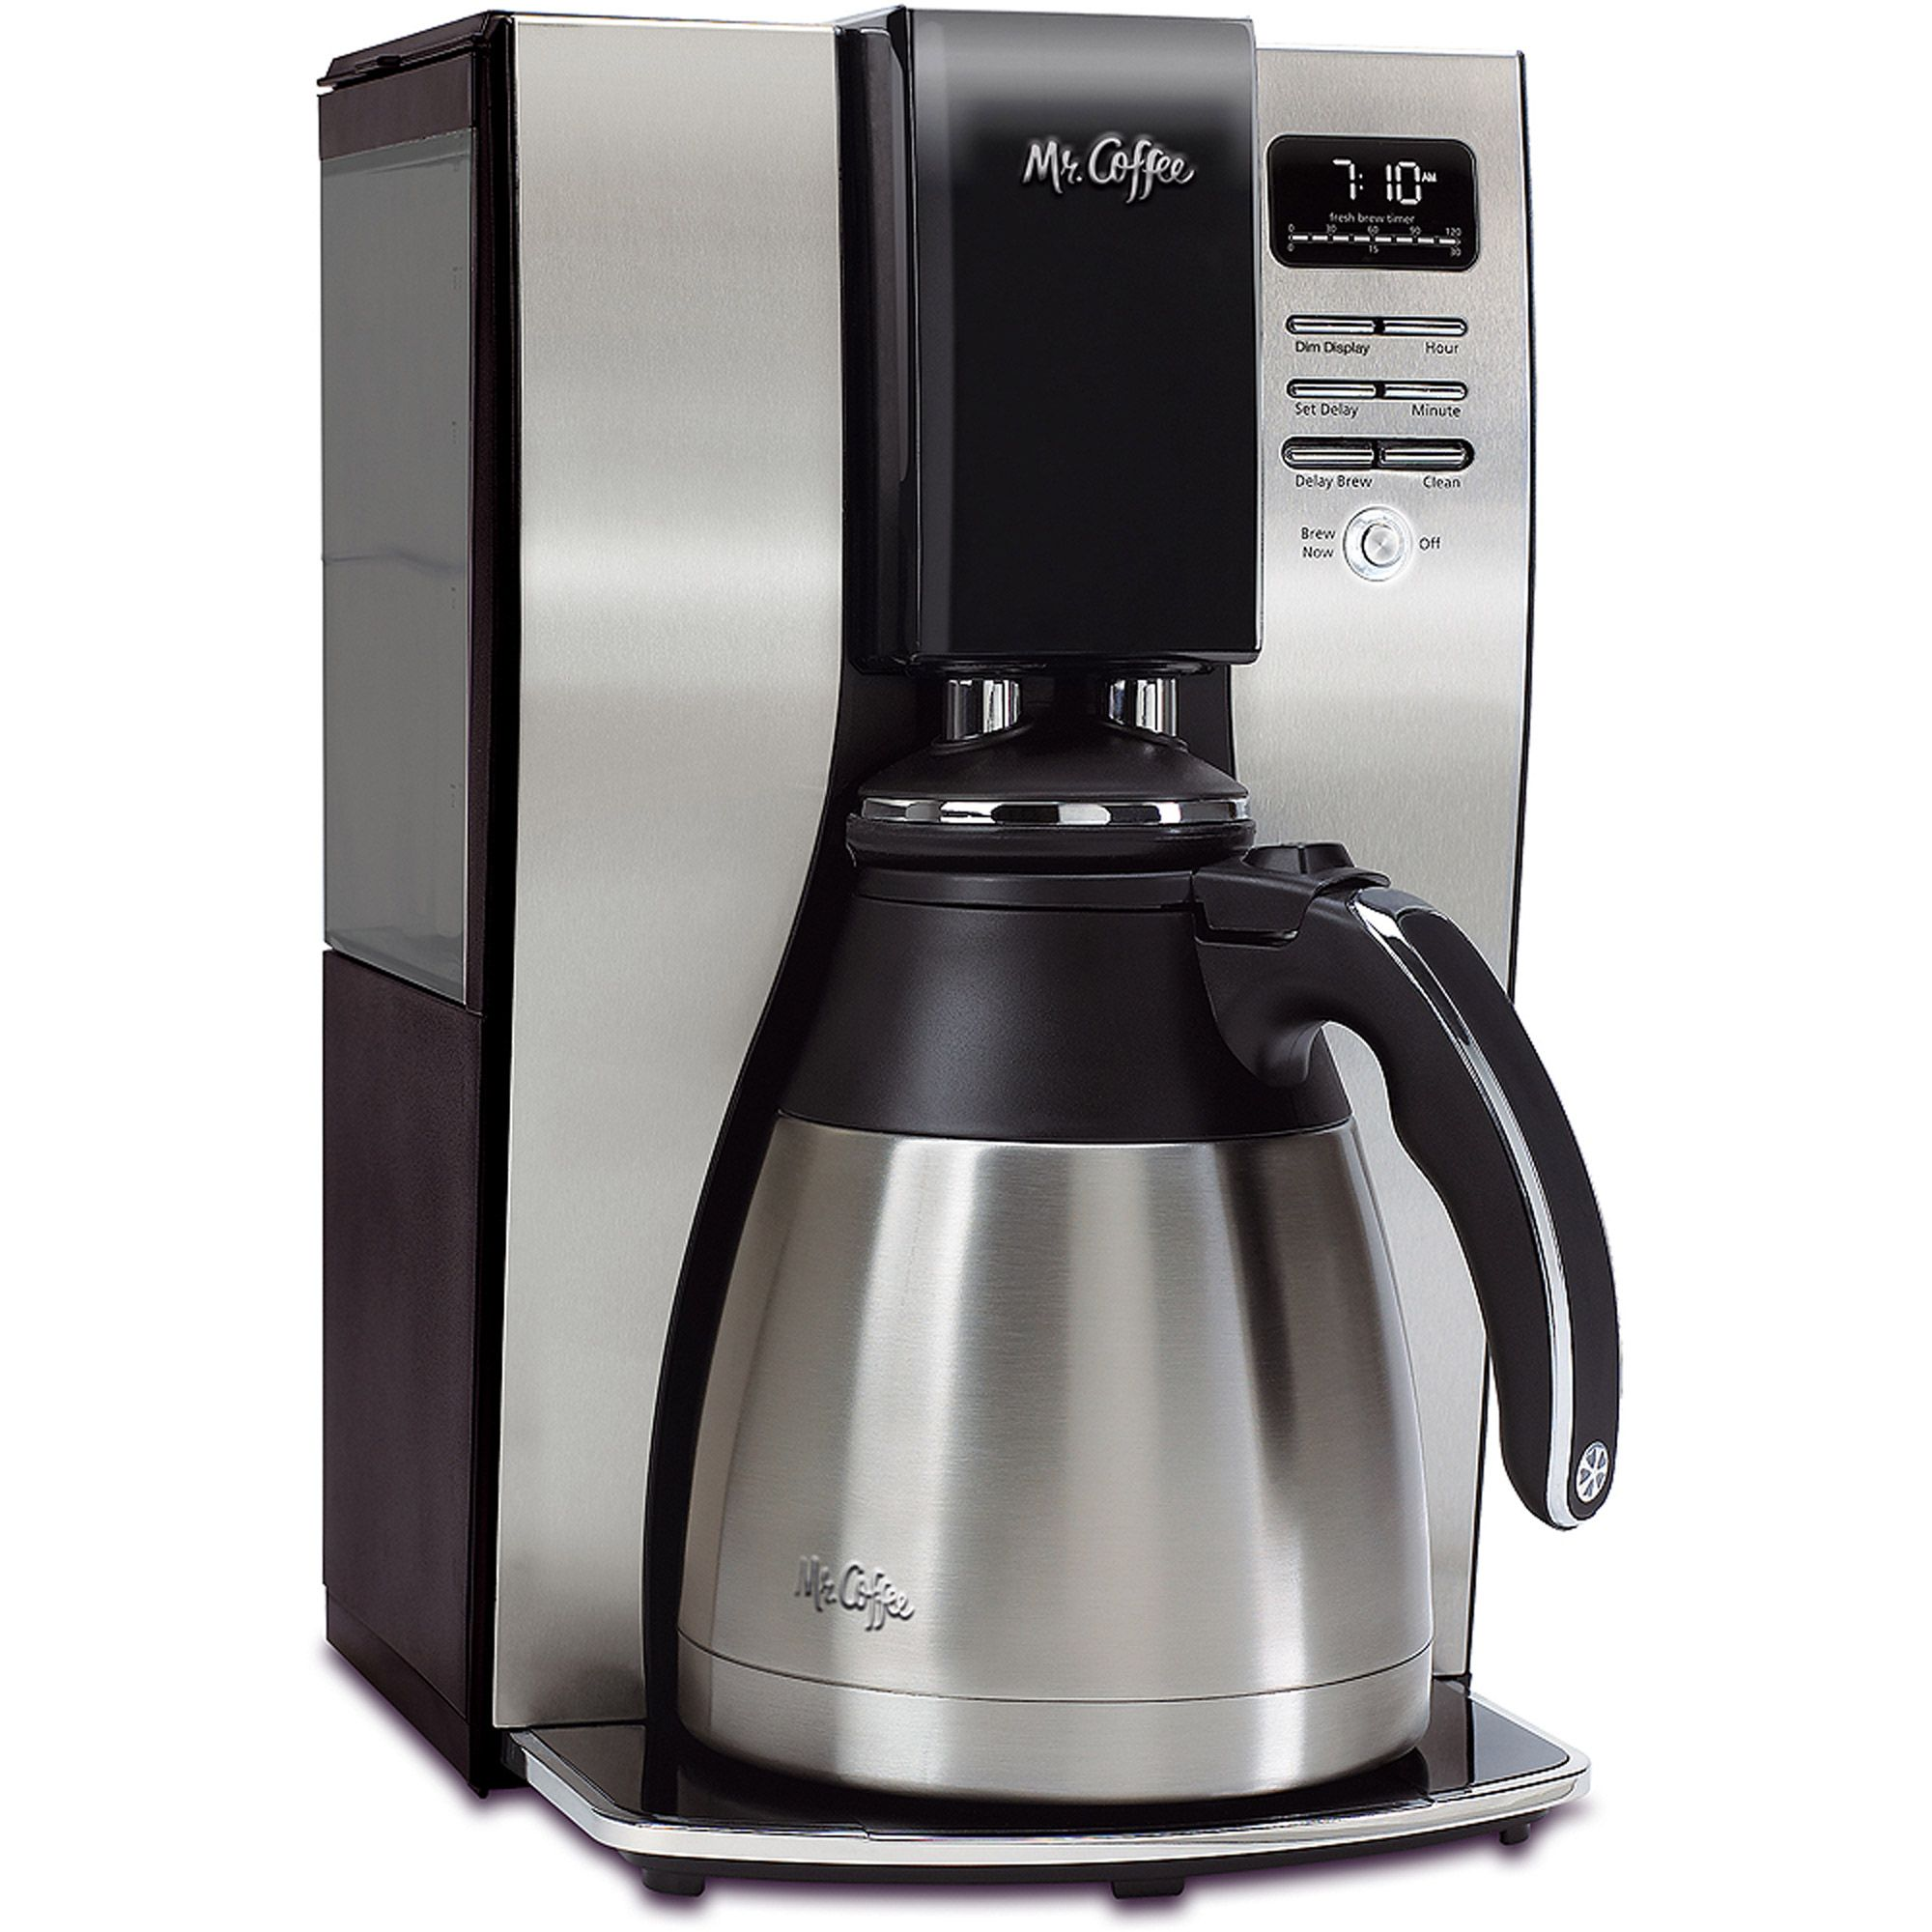 Best Electric Coffee Maker Mr Coffee 10 Cup Optimalbrew Thermal Coffee Maker The Ojays